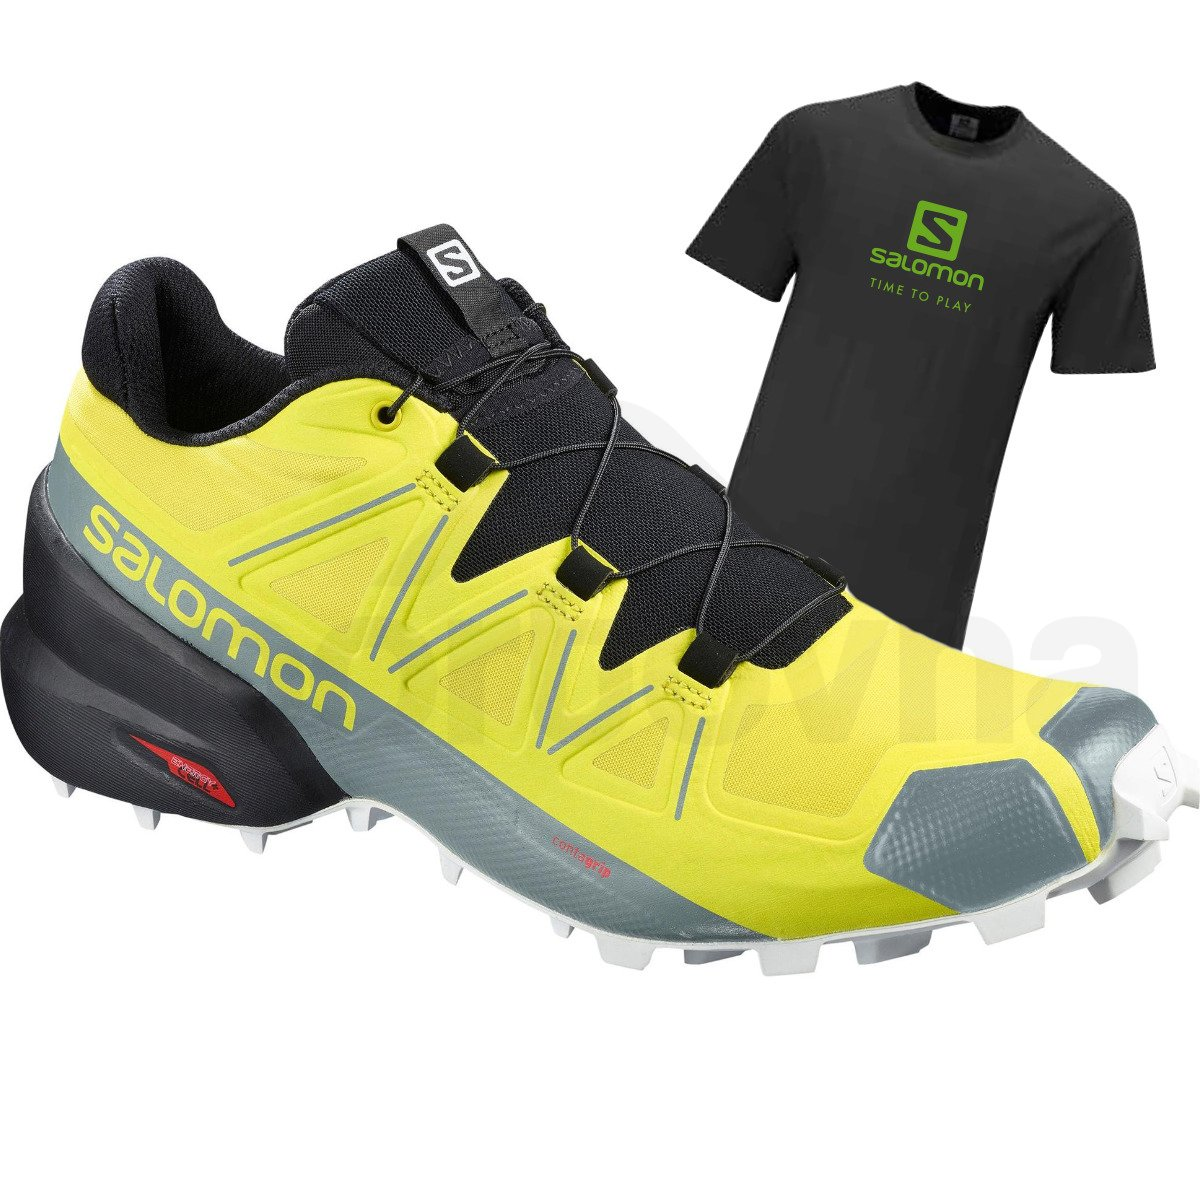 salomon-speedcross-5-206022-l40796700-orig